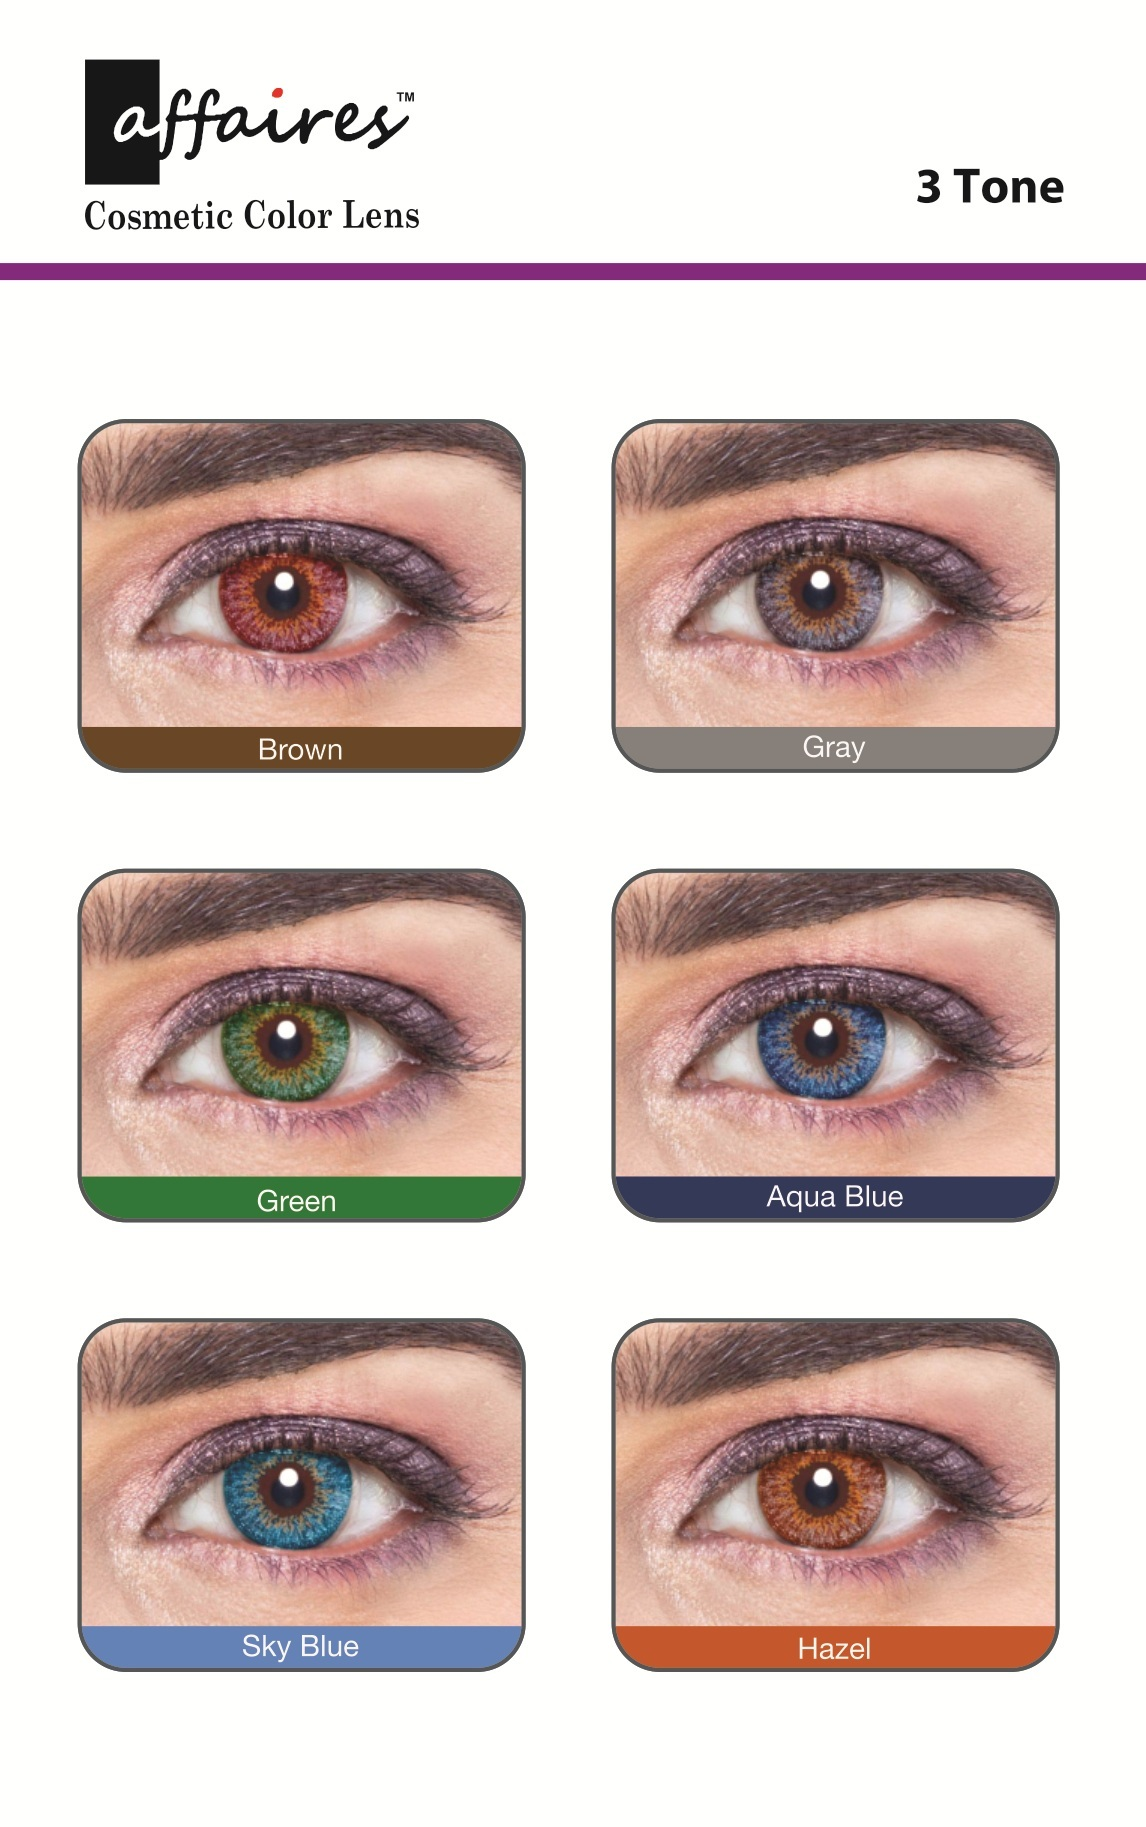 2b8d4d692ec2 Affaires Contact Lenses Yearly Color Lenses ,three Tone, Cosmetic Contact  Lenses, Eye Contact Lenses, Eye Lens, Optical Contact Lens - Isha Optical,  ...